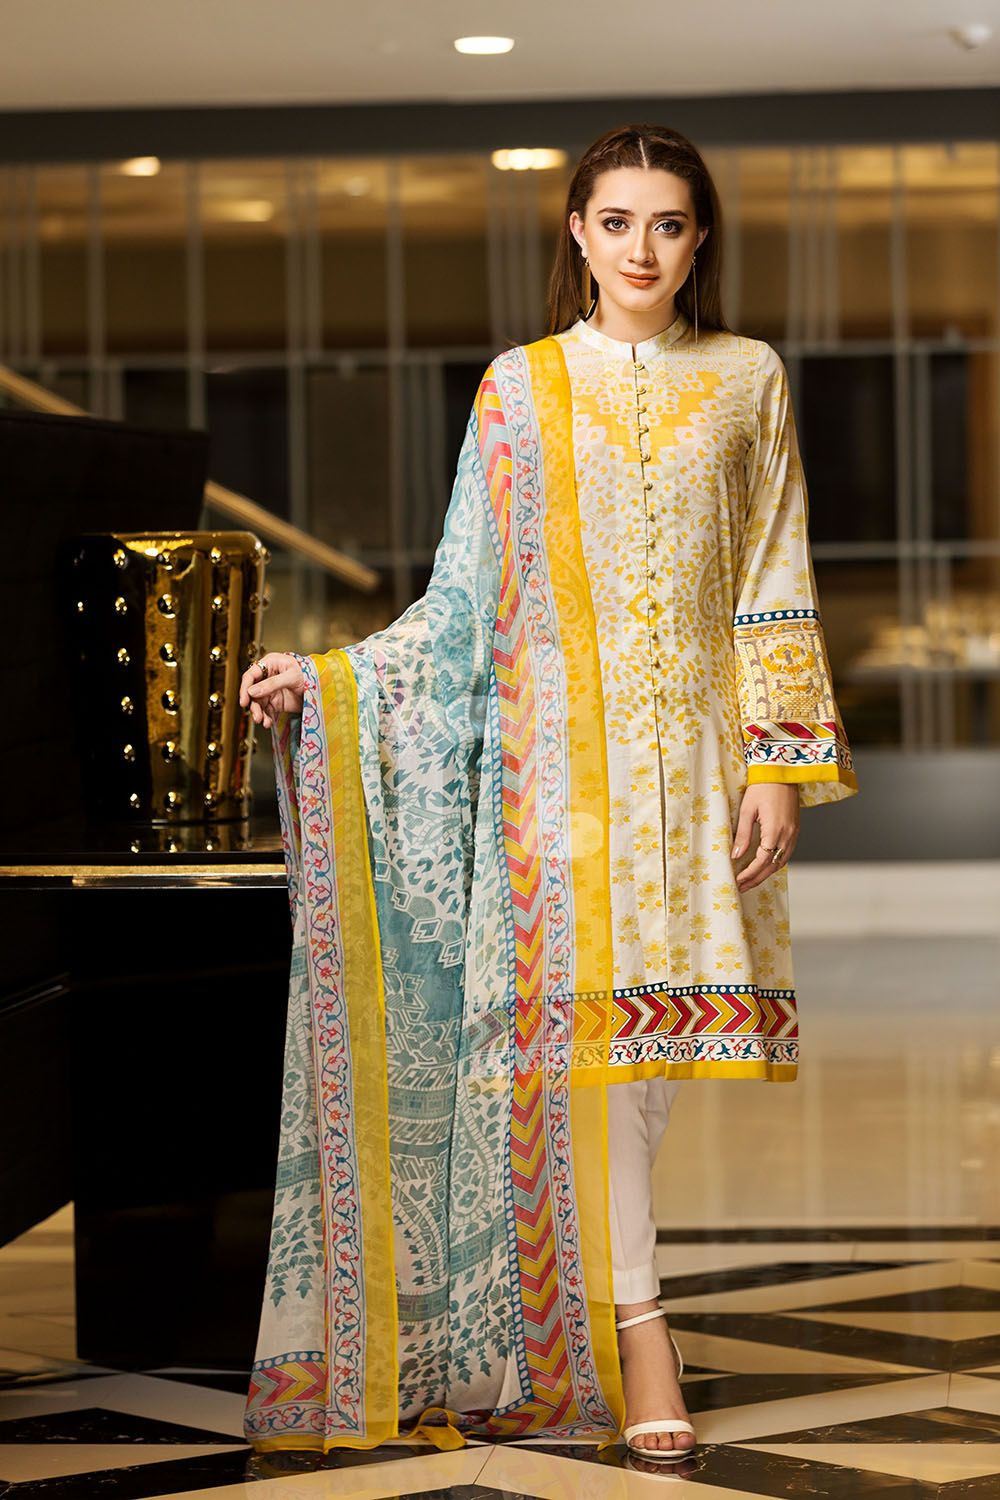 1a9e2e648afe ... Online Shopping in Pakistan. Beautiful off-white Pakistani dress  Pakistani Dresses Casual